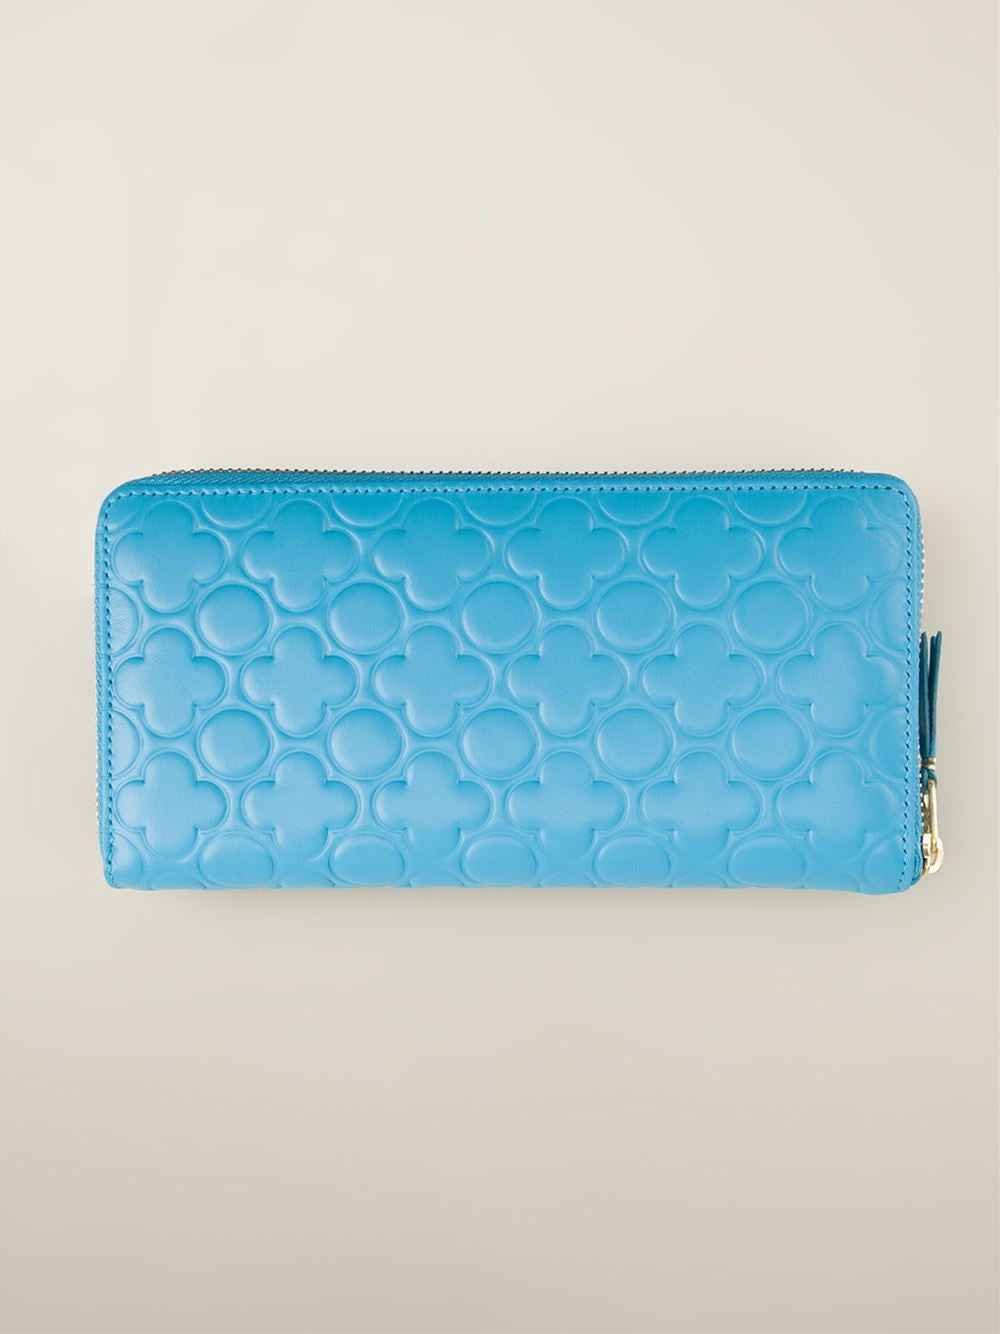 Embossed Leather Pocket Book | SA011E-B